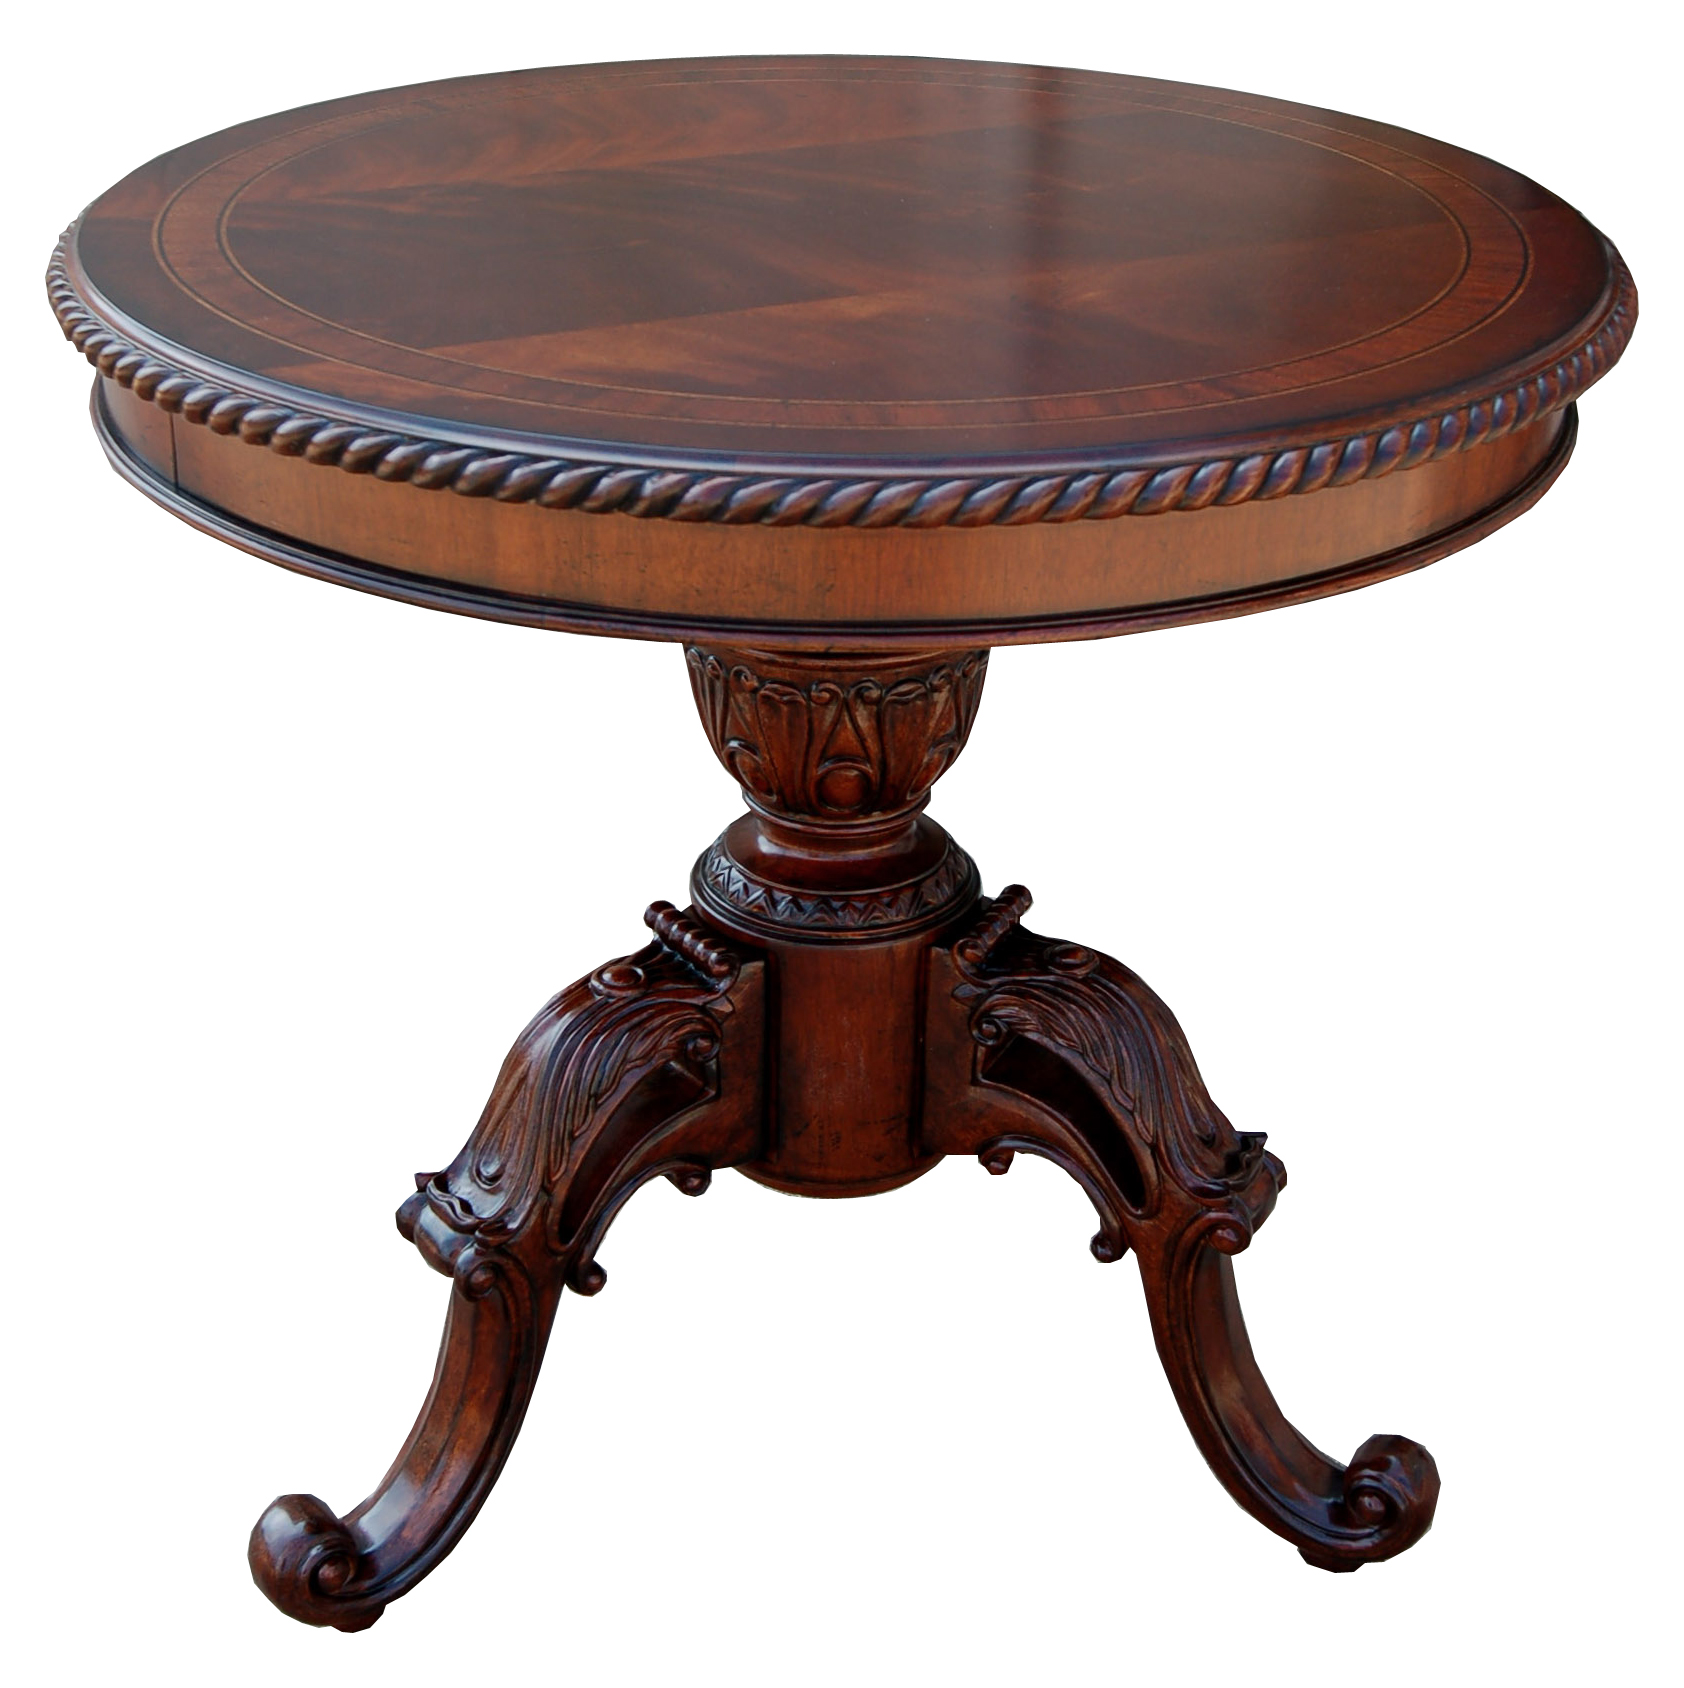 Traditional ornate mahogany round accent end table